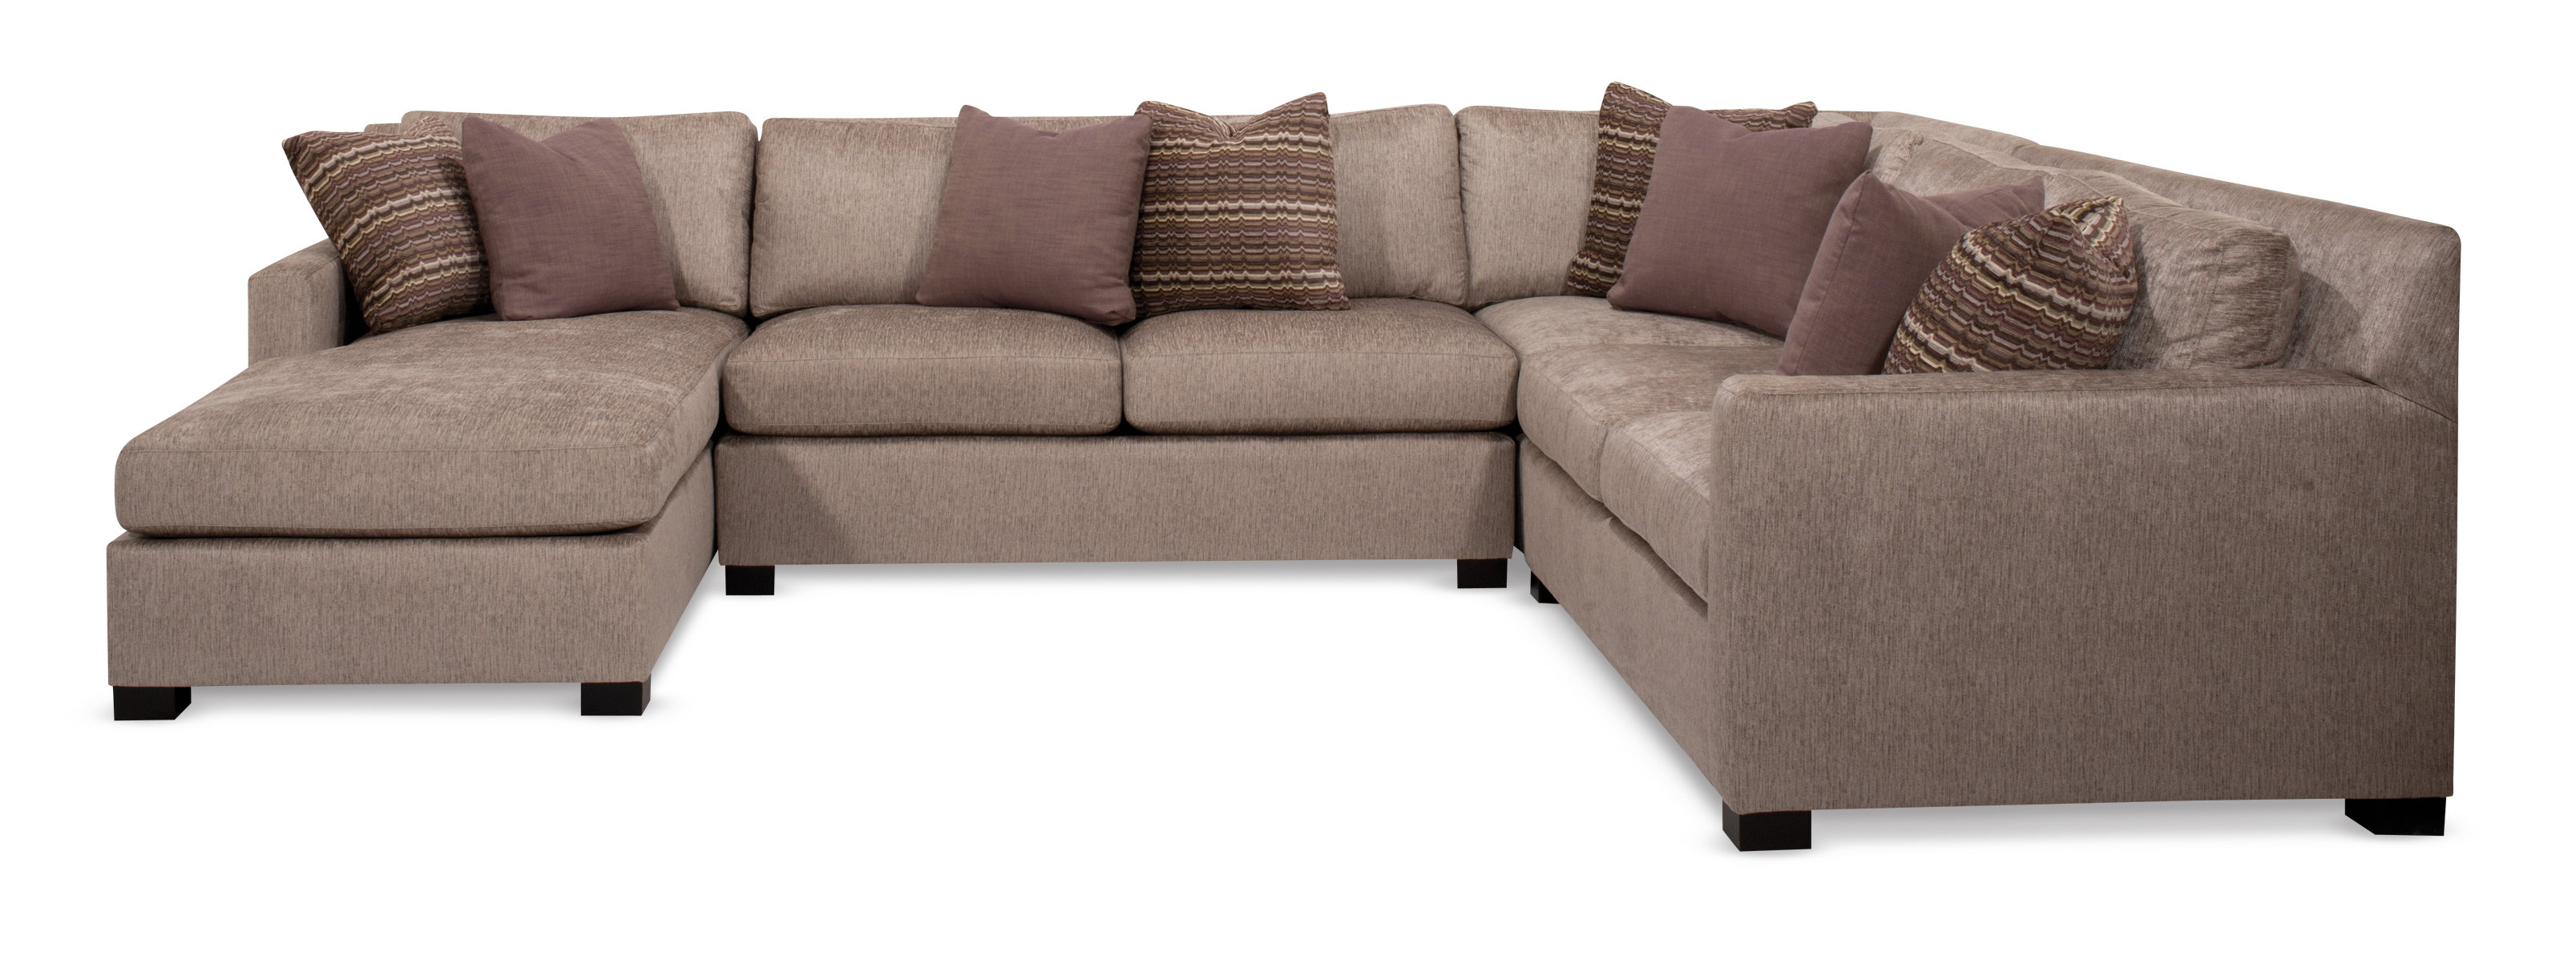 Kelsey Four Piece Sectional  sc 1 st  Robb u0026 Stucky : mccreary modern sectional - Sectionals, Sofas & Couches